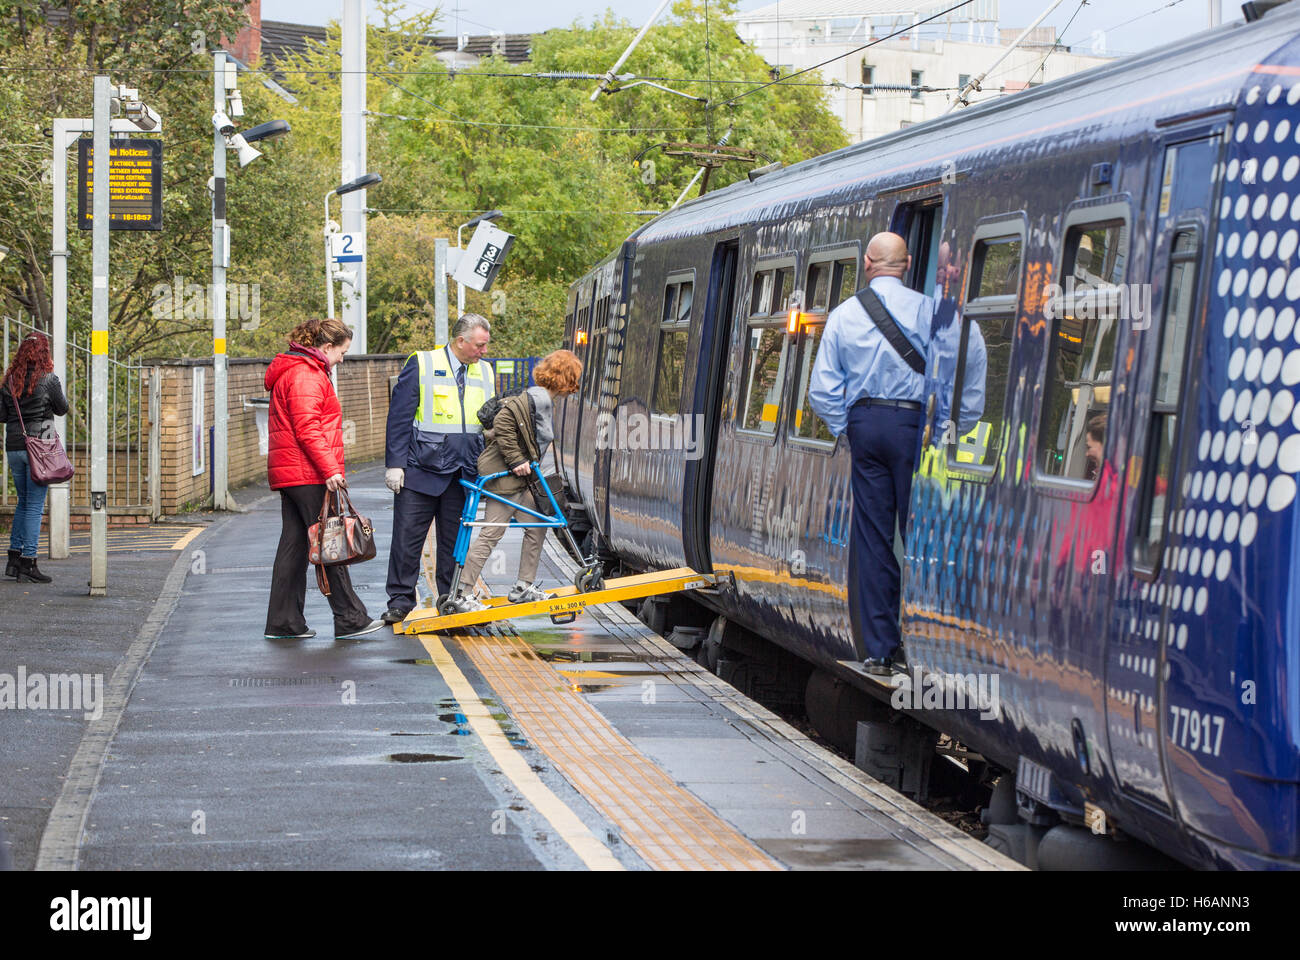 At Partick Train Station a passenger uses the disabled ramp to board a train. - Stock Image